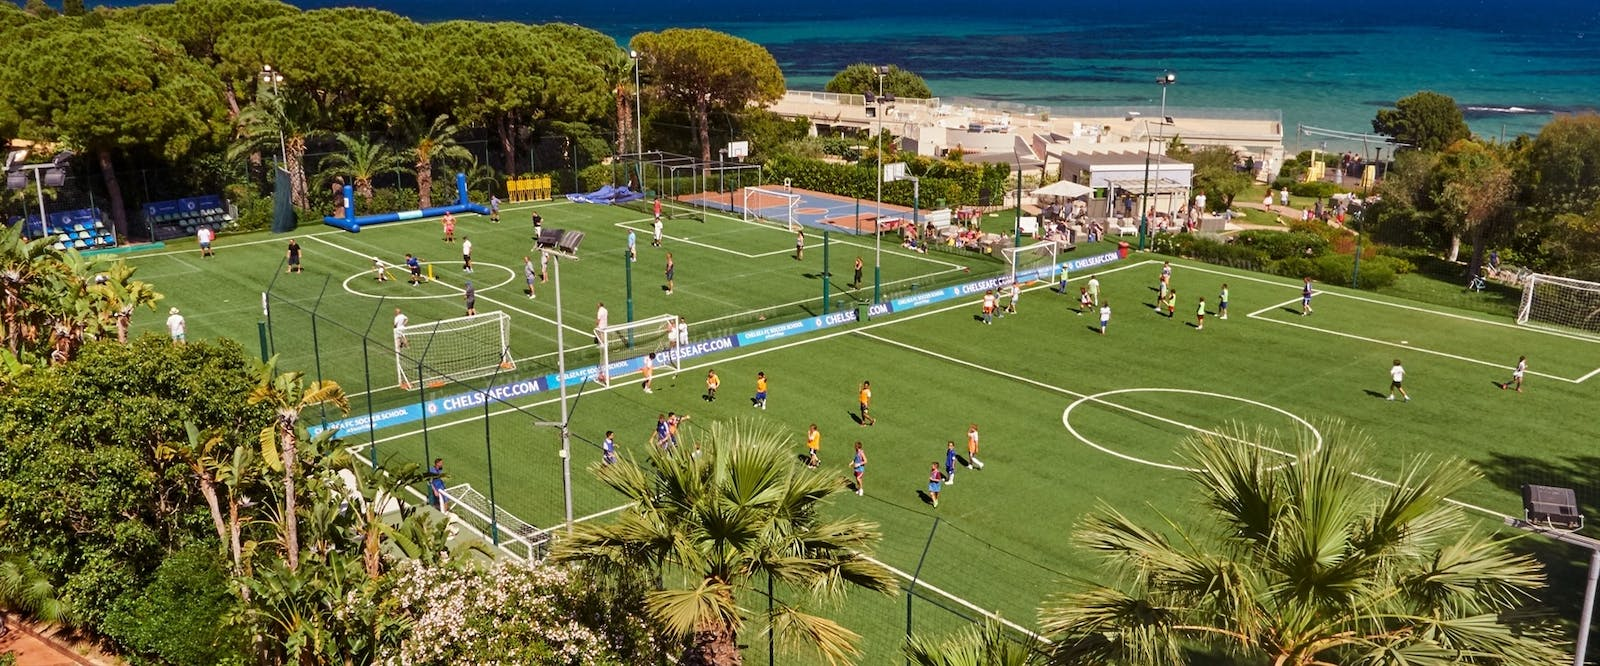 Football and Basketball Sports Field at Forte Village Resort, South Sardinia, Italy